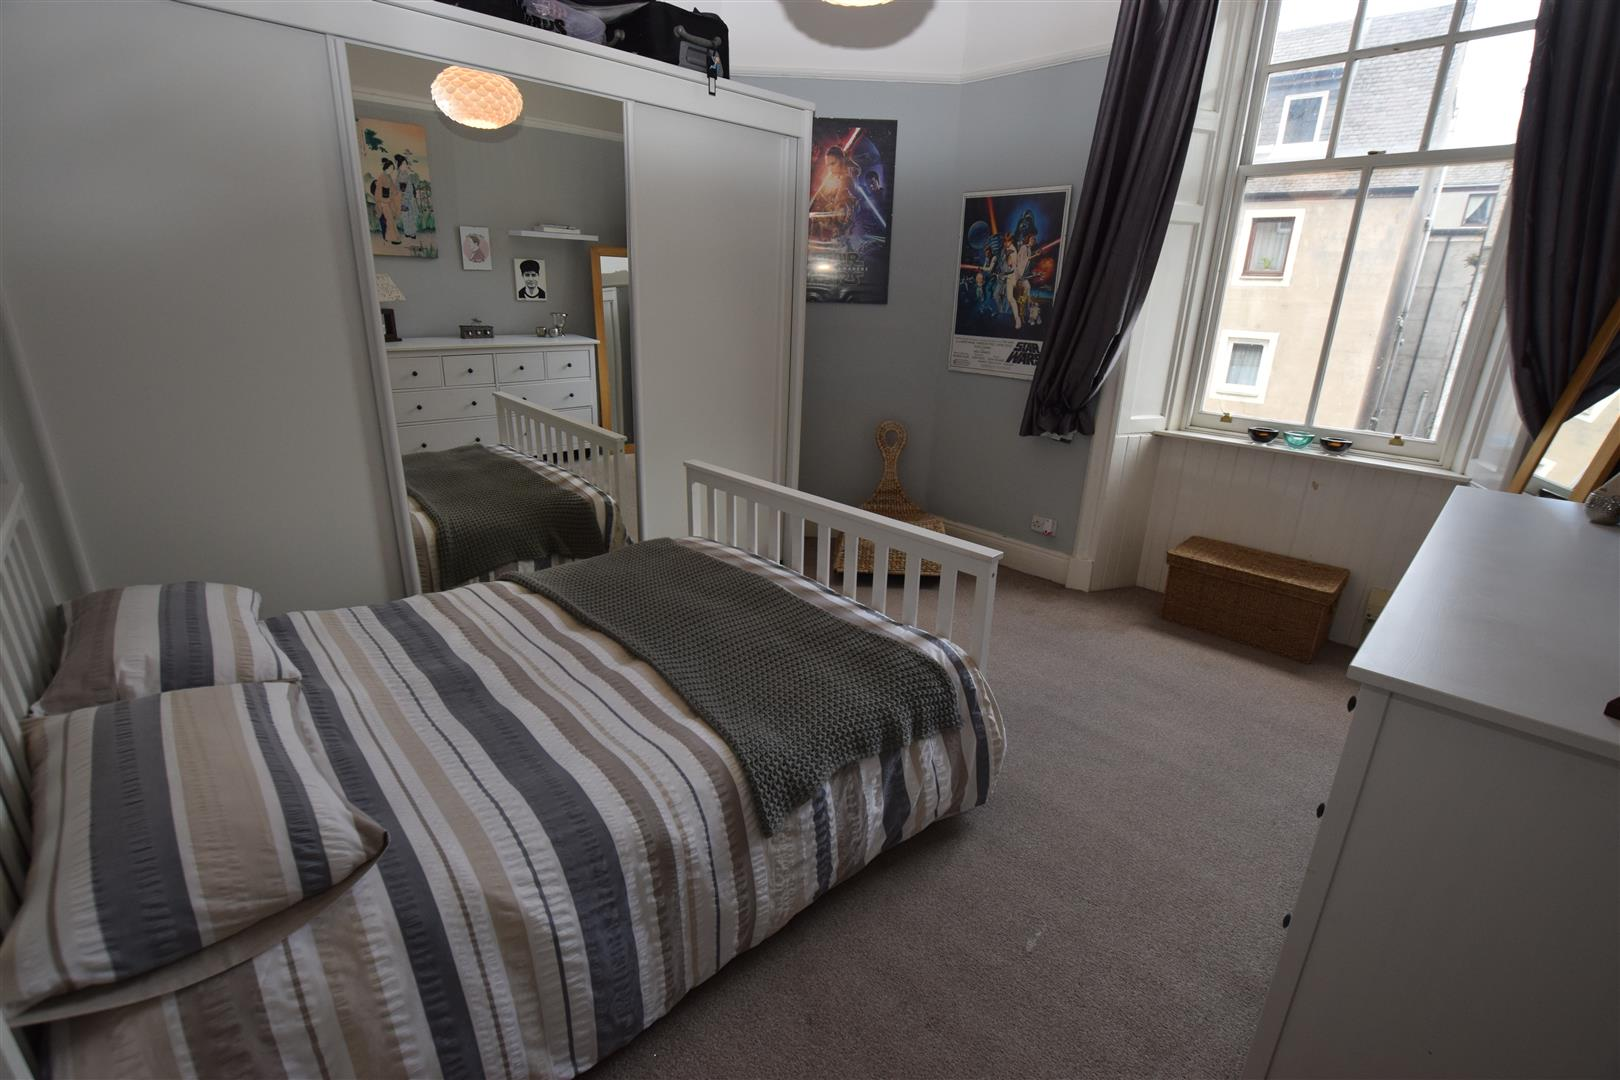 Canal Crescent, Perth, Perthshire, PH2 8HT, UK